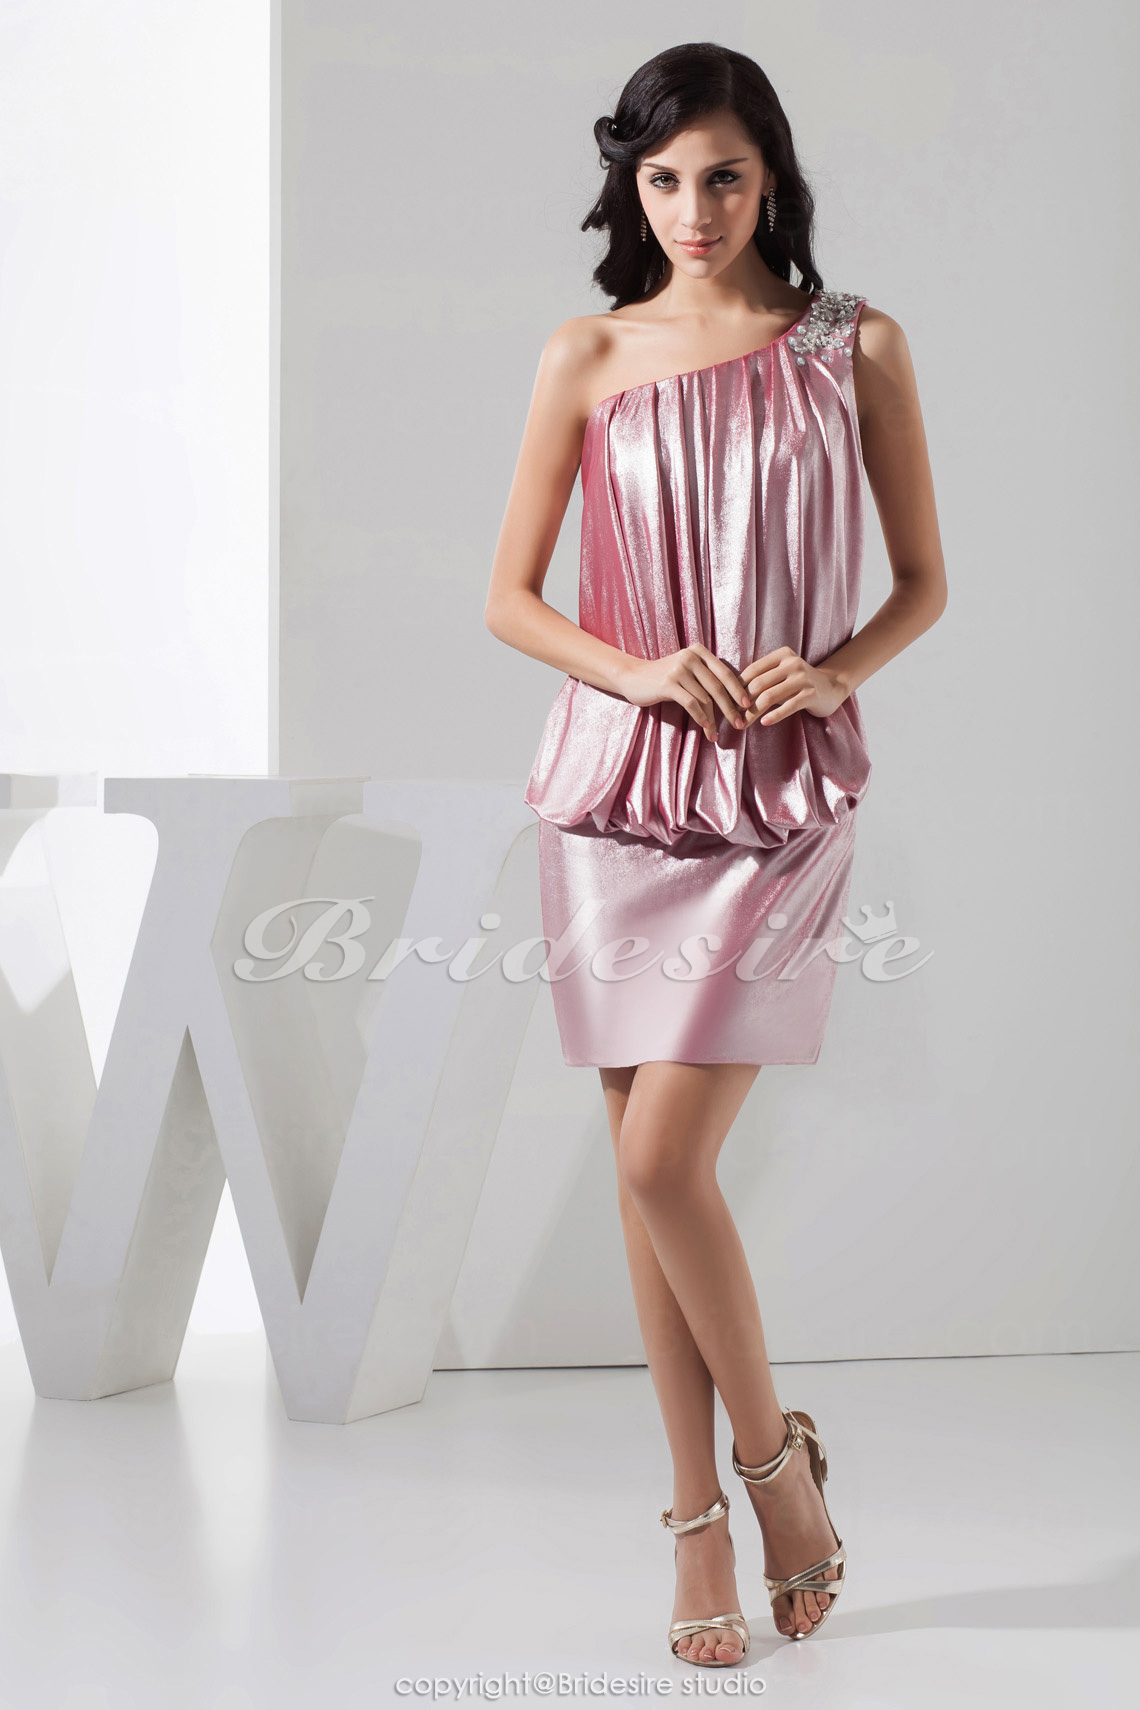 Sheath/Column One Shoulder Short/Mini Sleeveless Taffeta Dress